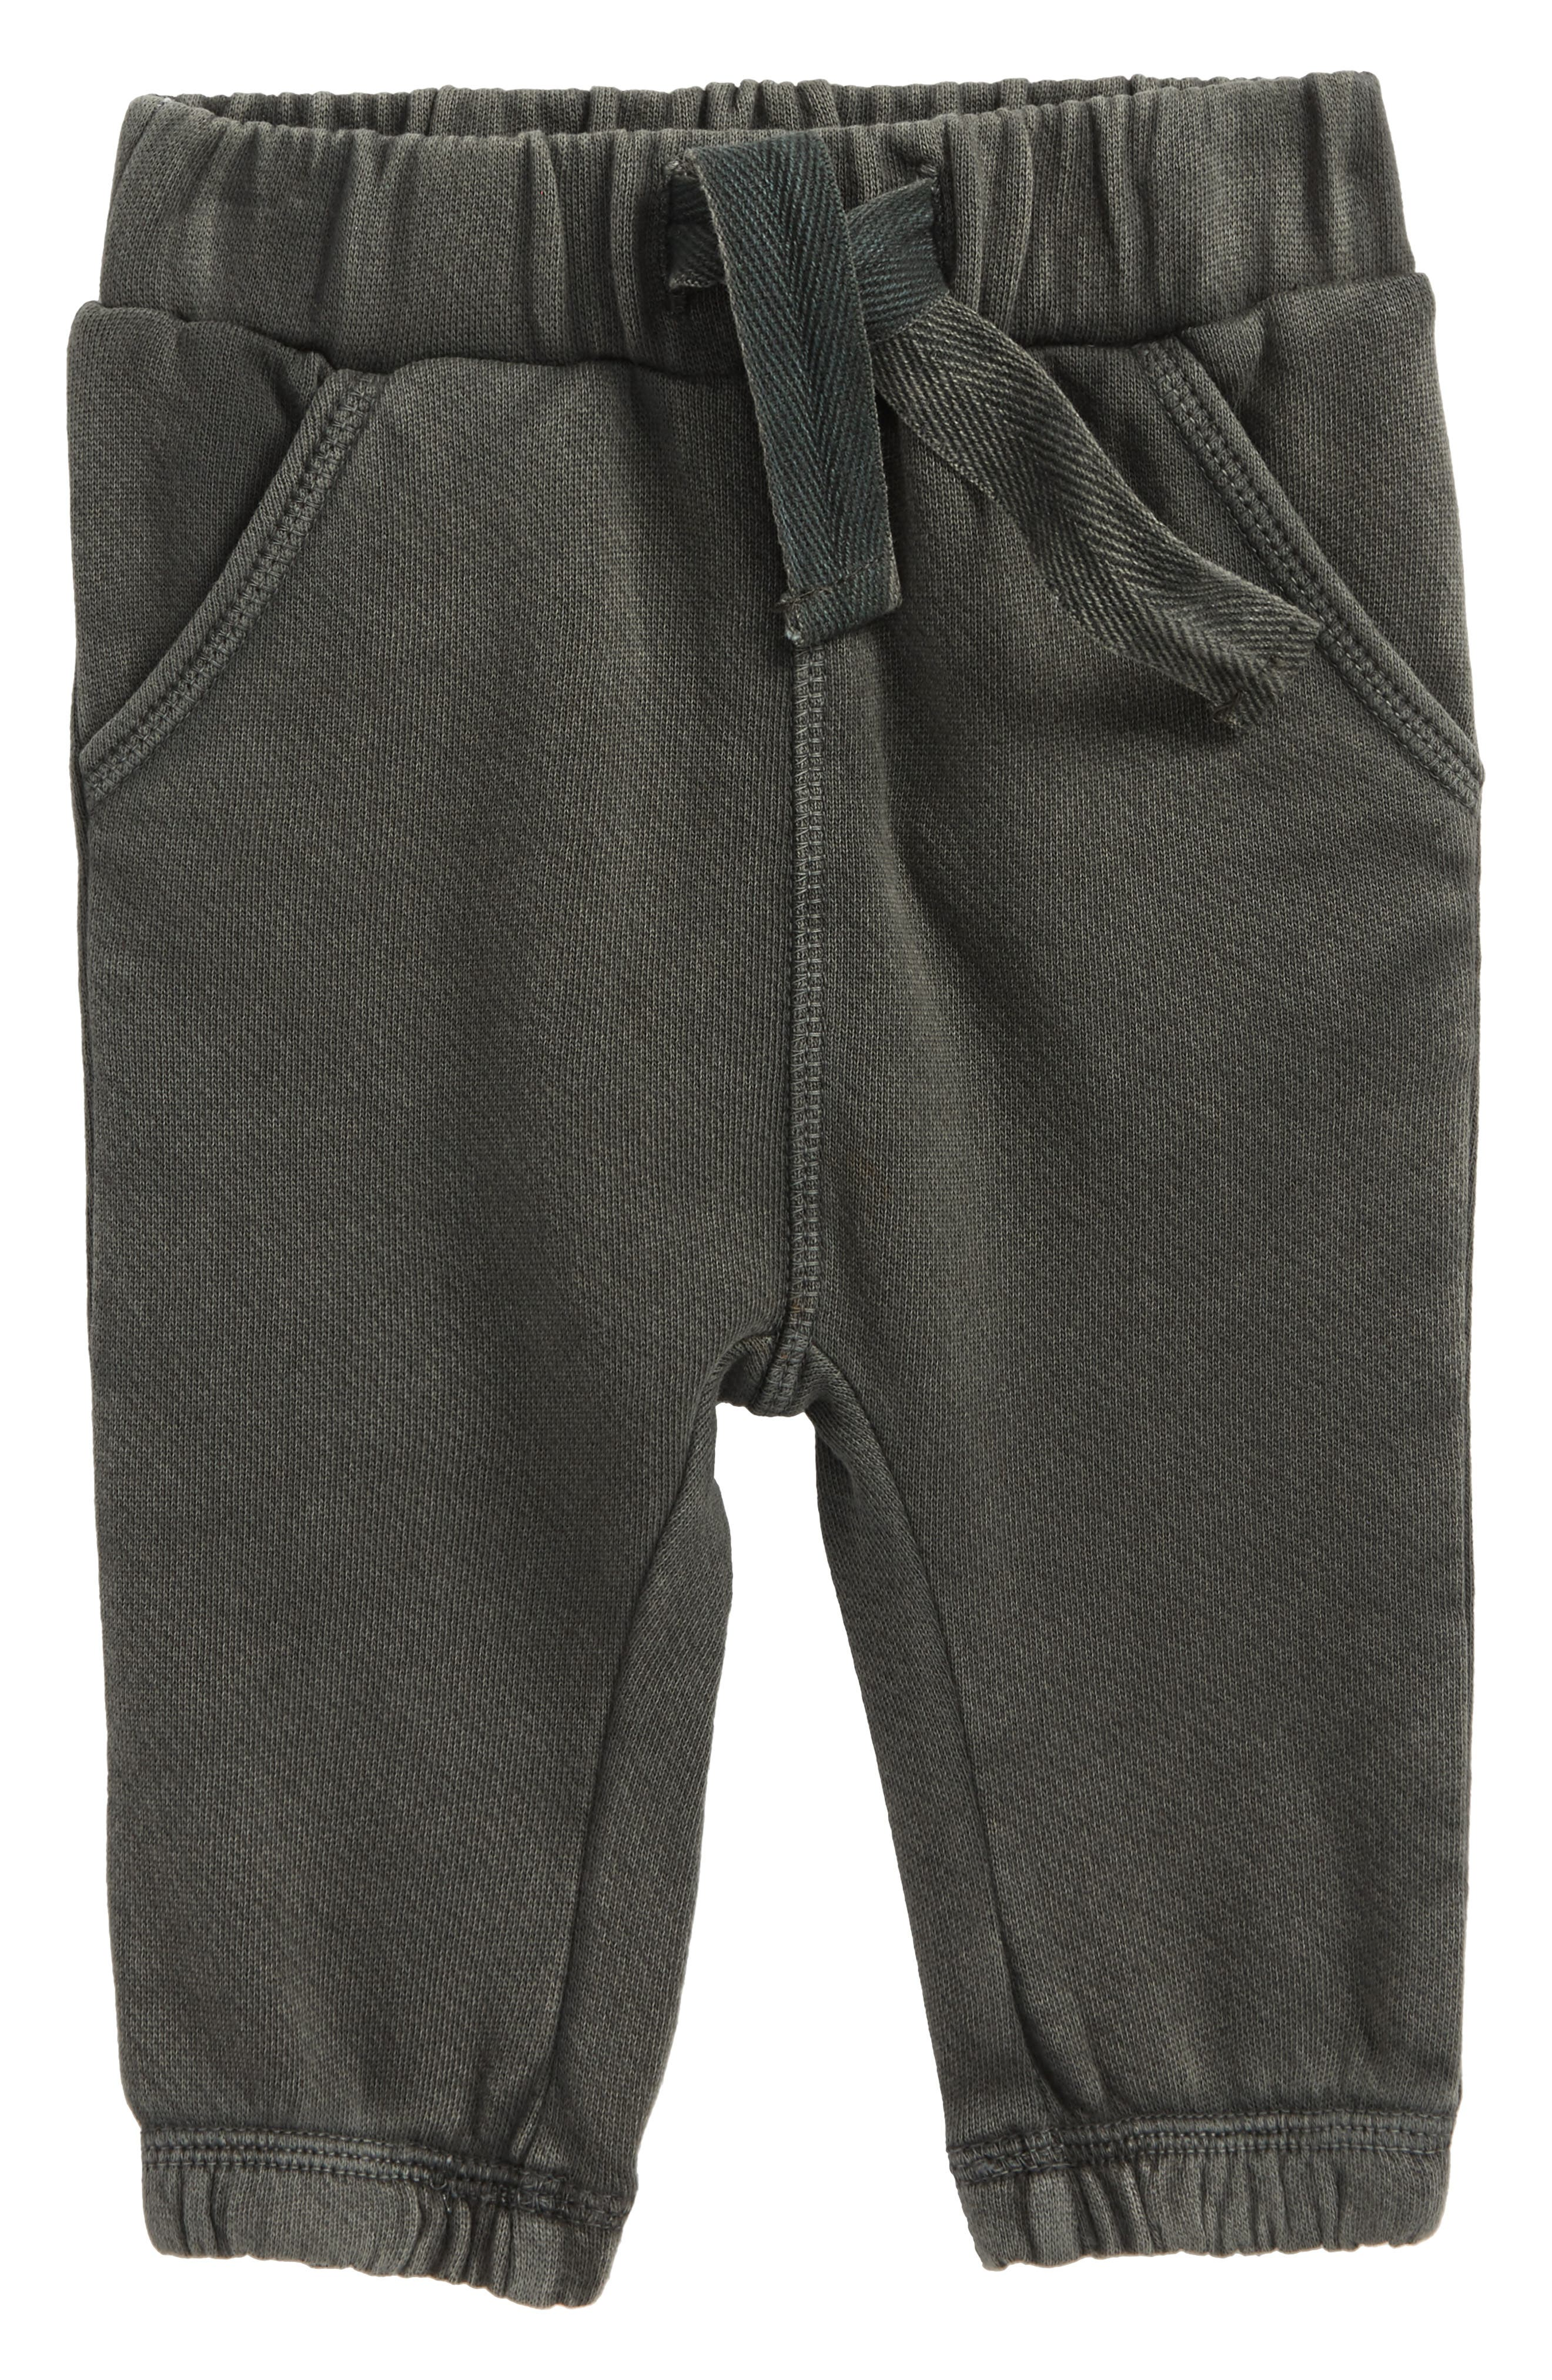 Alternate Image 1 Selected - Tucker & Tate Washed Jogger Pants (Baby Boys)